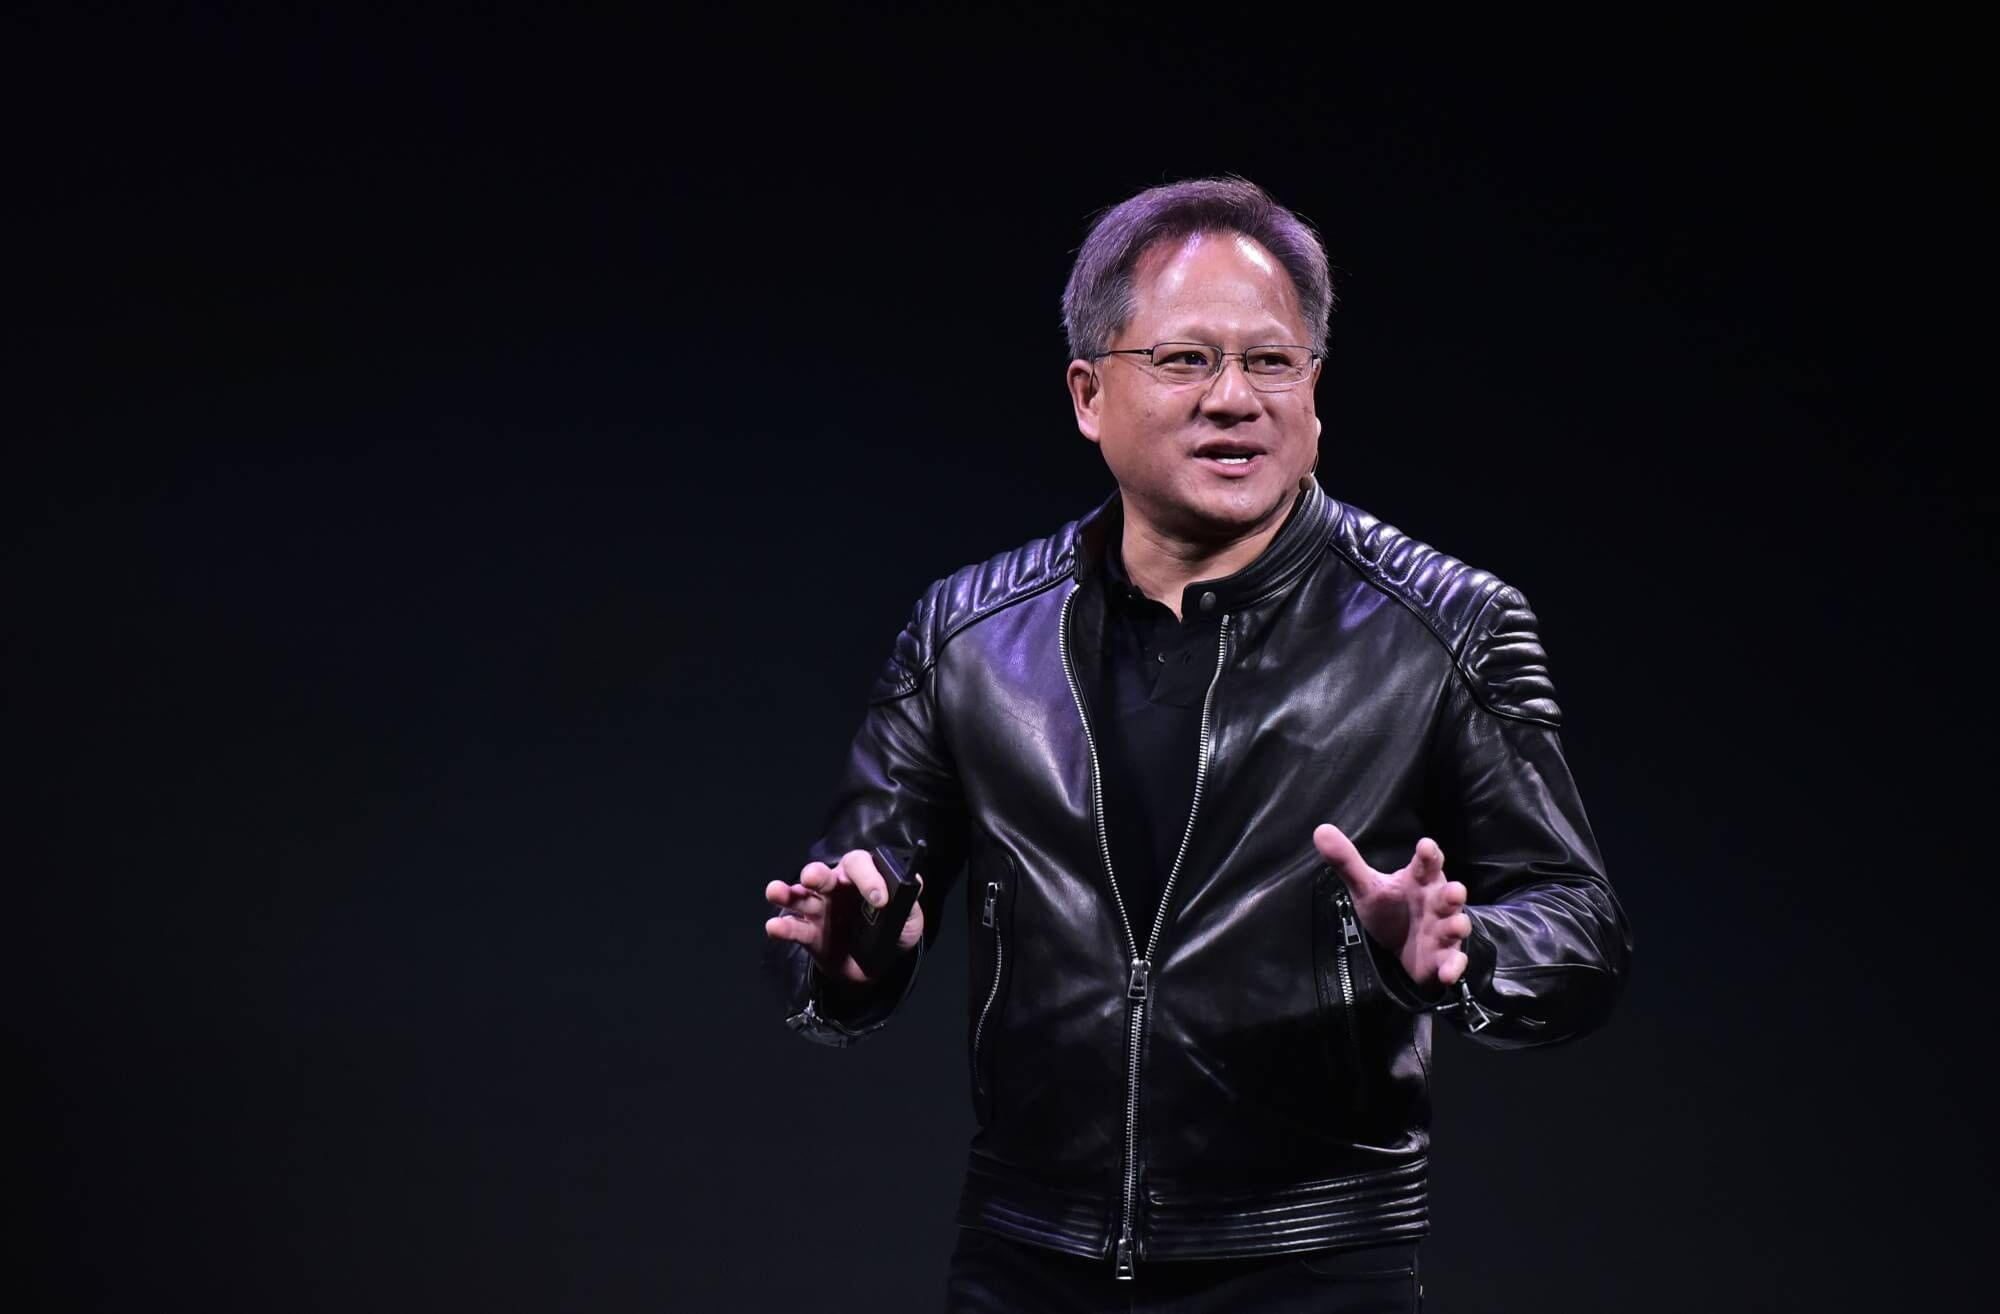 Nvidia is amped up for a big reveal on May 14